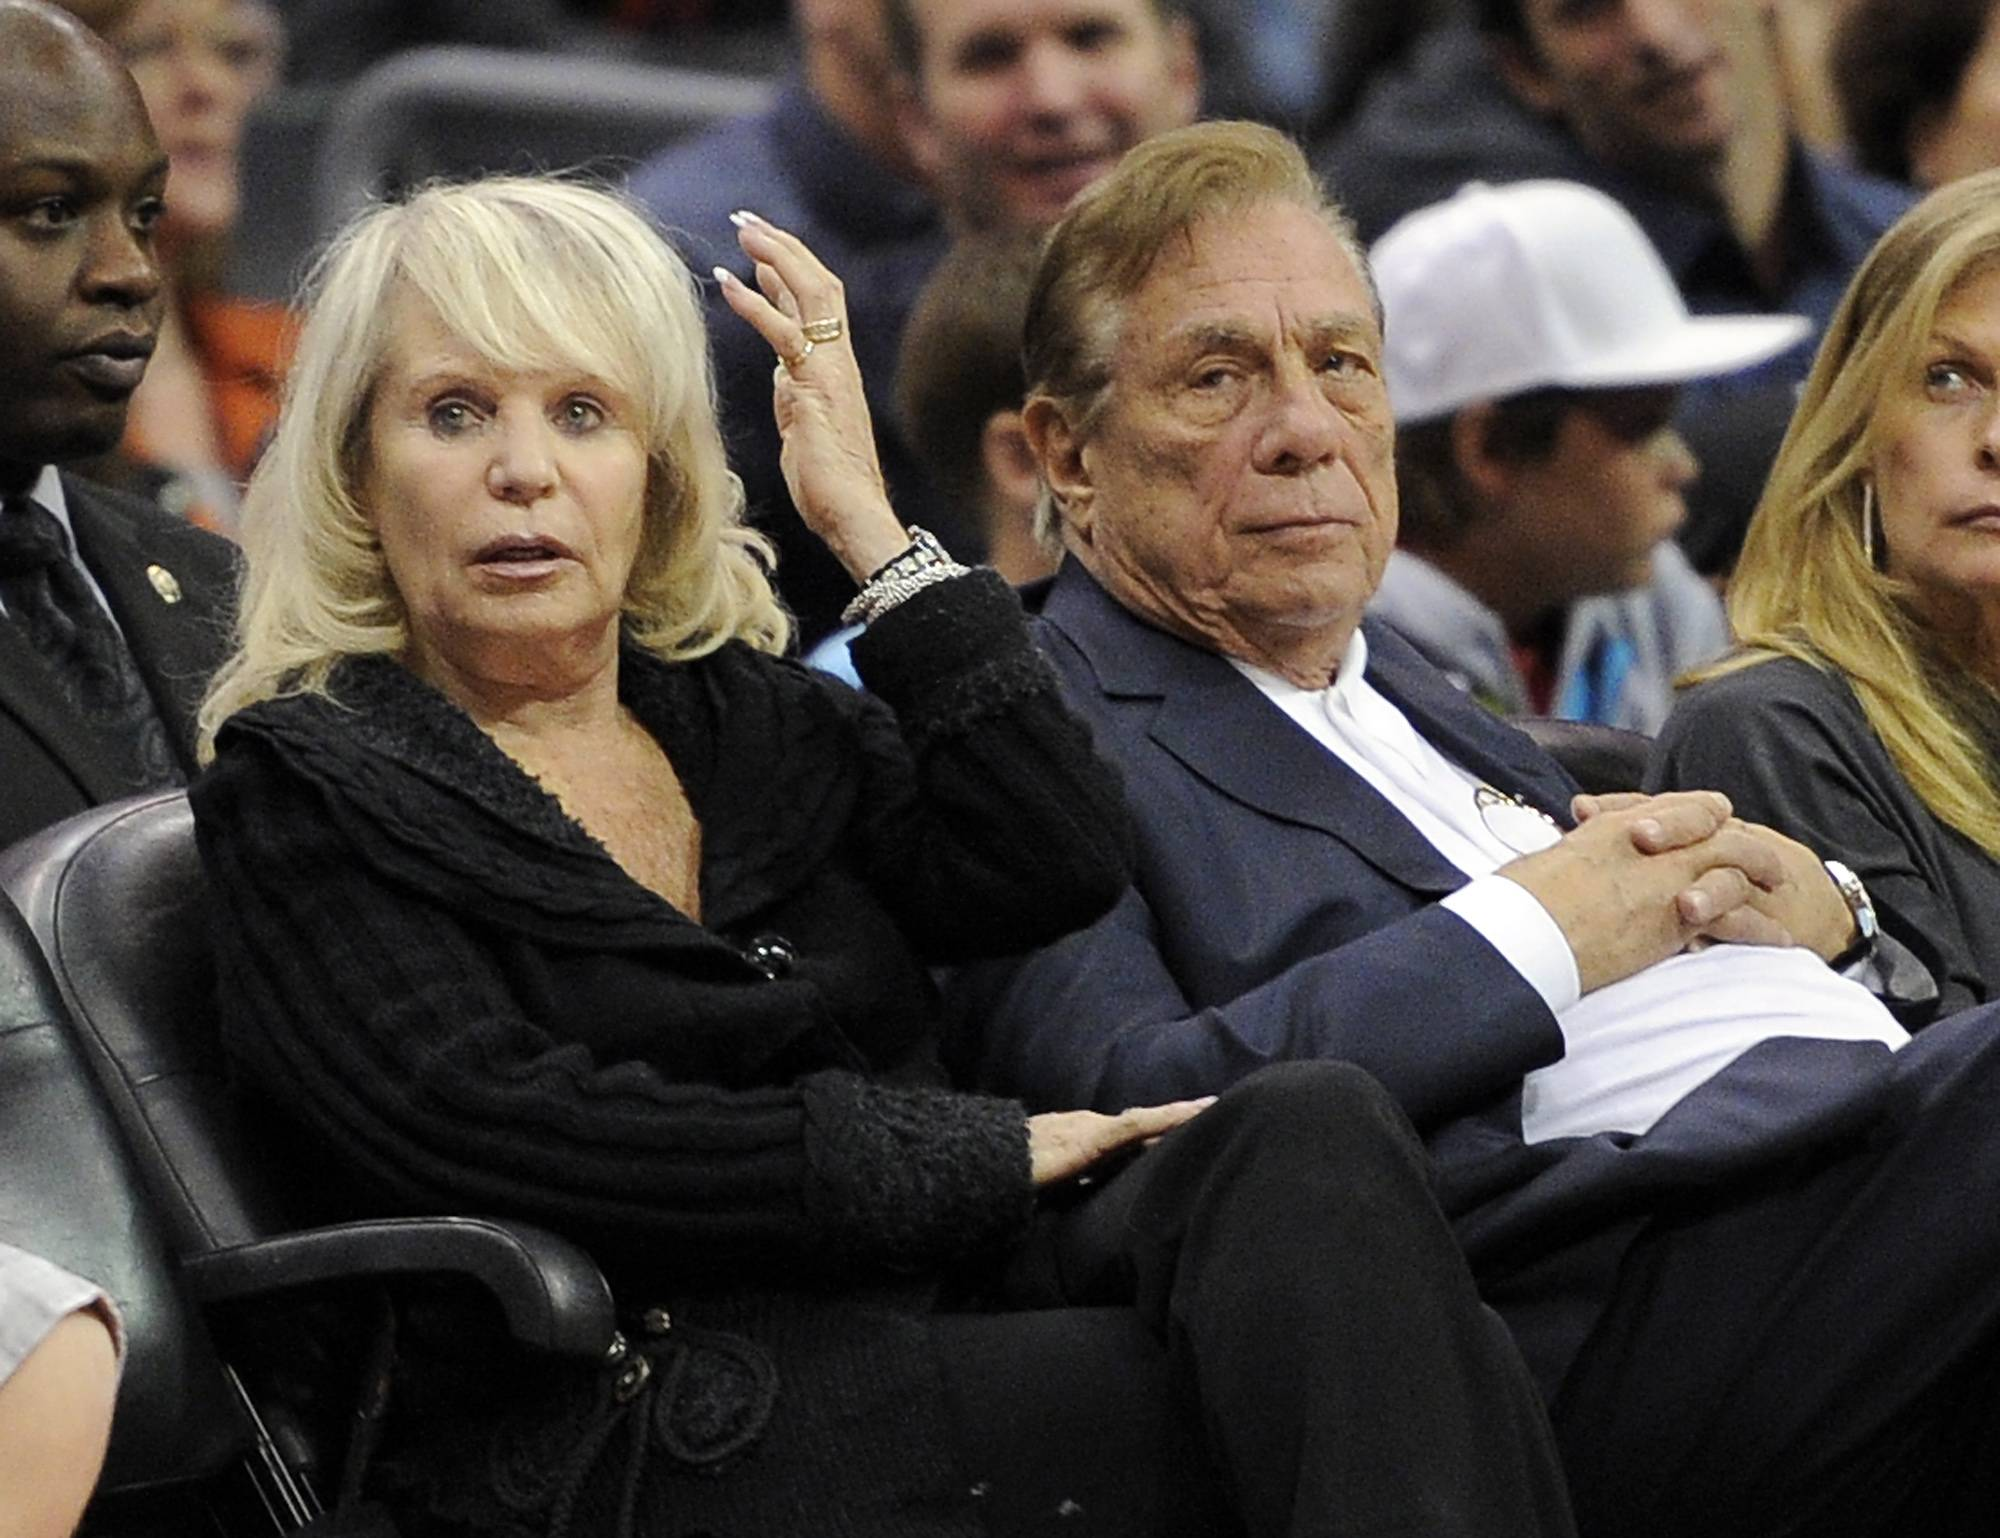 Shelly Sterling reached an agreement Thursday night to sell the Los Angeles Clippers to former Microsoft CEO Steve Ballmer for $2 billion, according to an individual with knowledge of the negotiations.